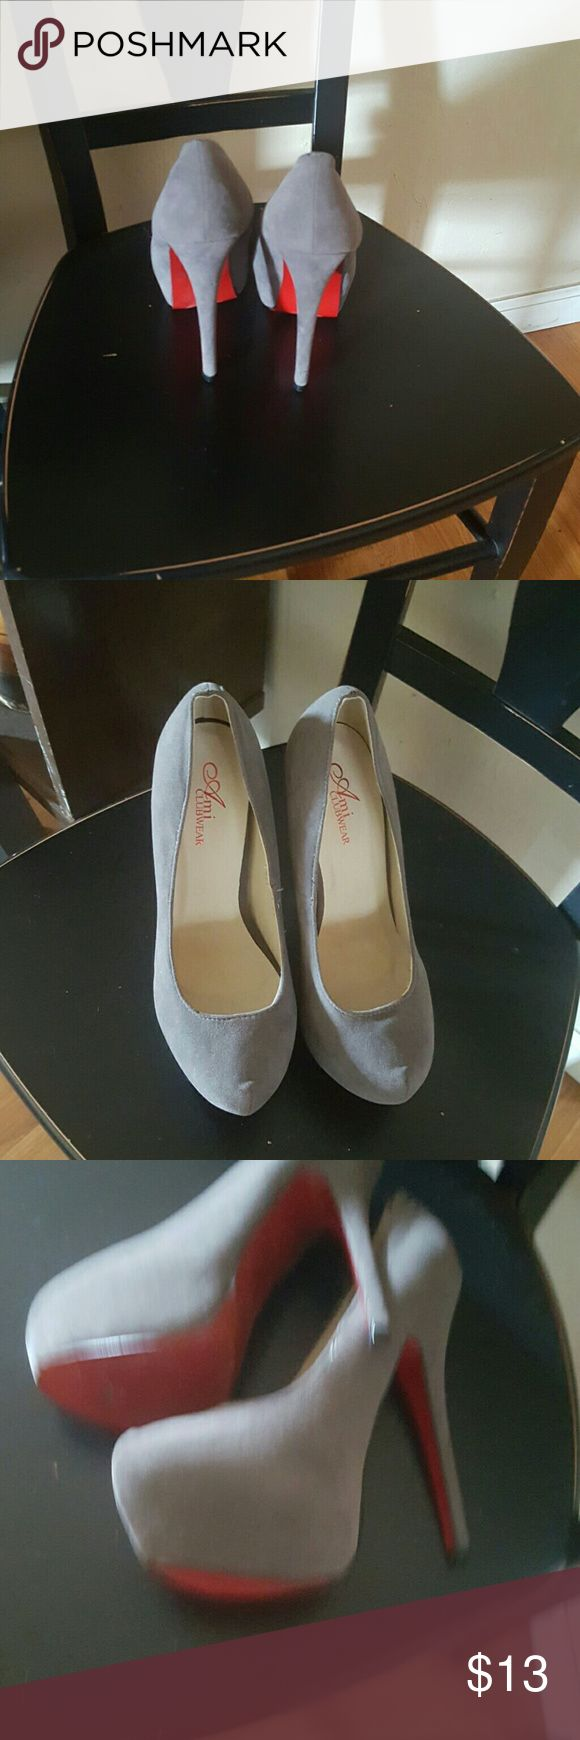 Gray beautiful heels with red bottom Fabulous gray heels with red bottom Shoes Heels